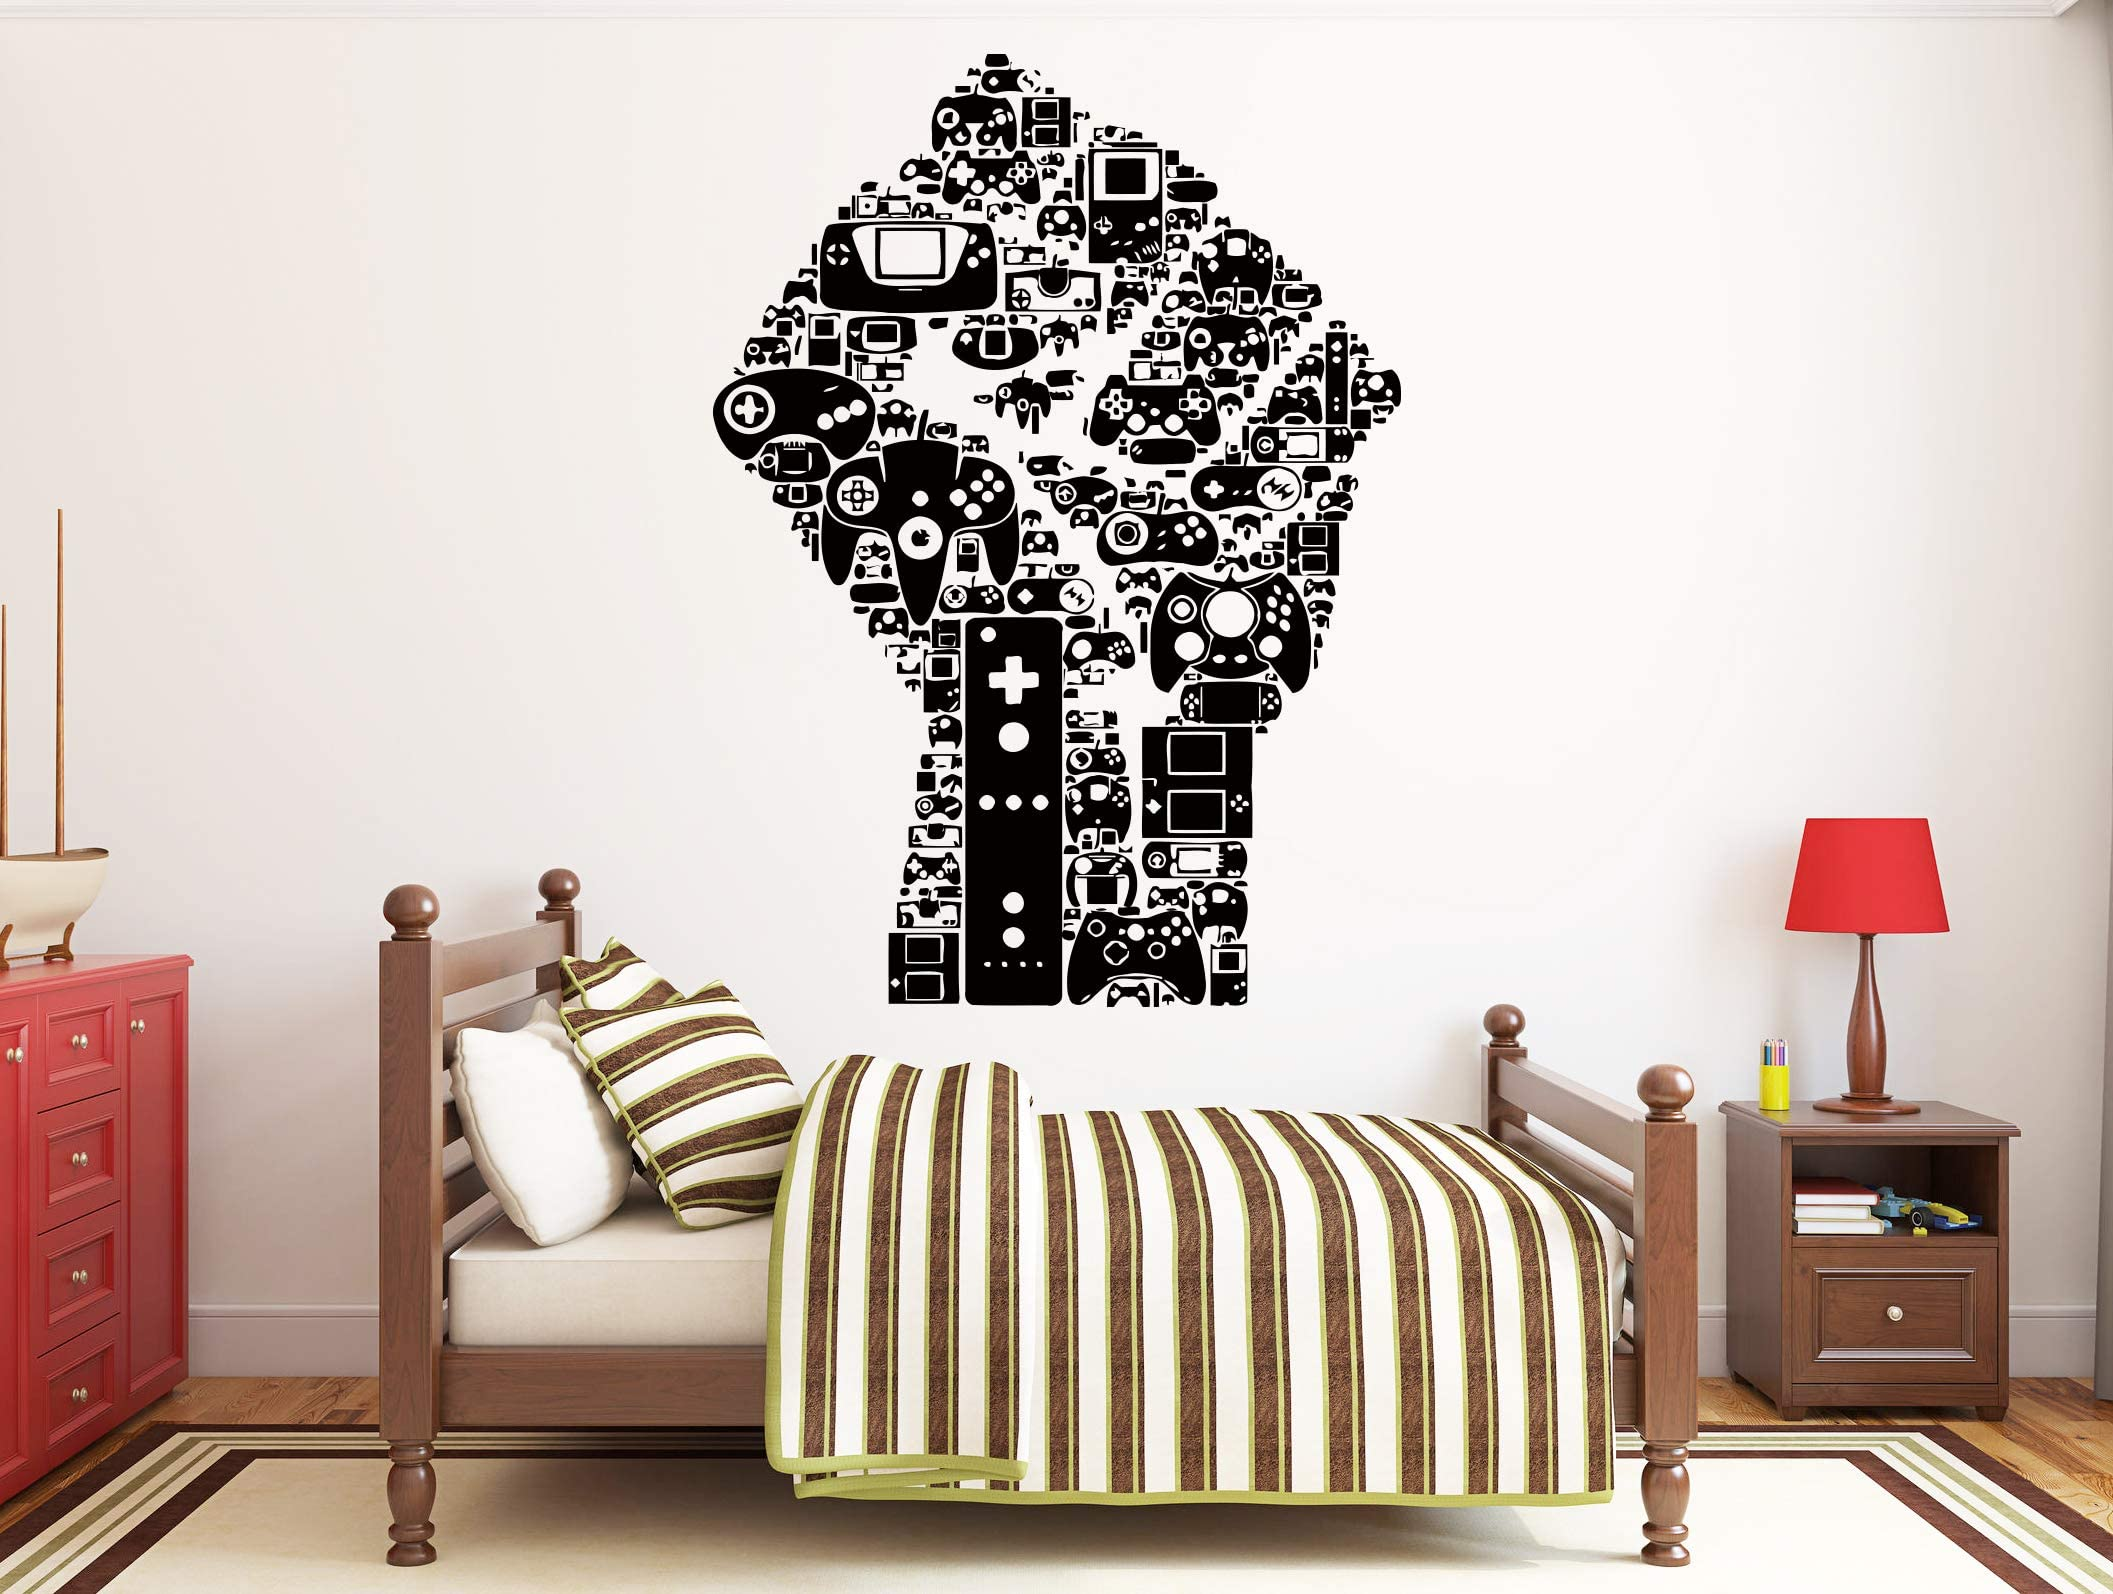 Furniture Decals Chair Wall Decor Floor Lamp Playhouse Decor Sofa Play House Bedroom Wall Decal Home Couch Office Playroom Decor